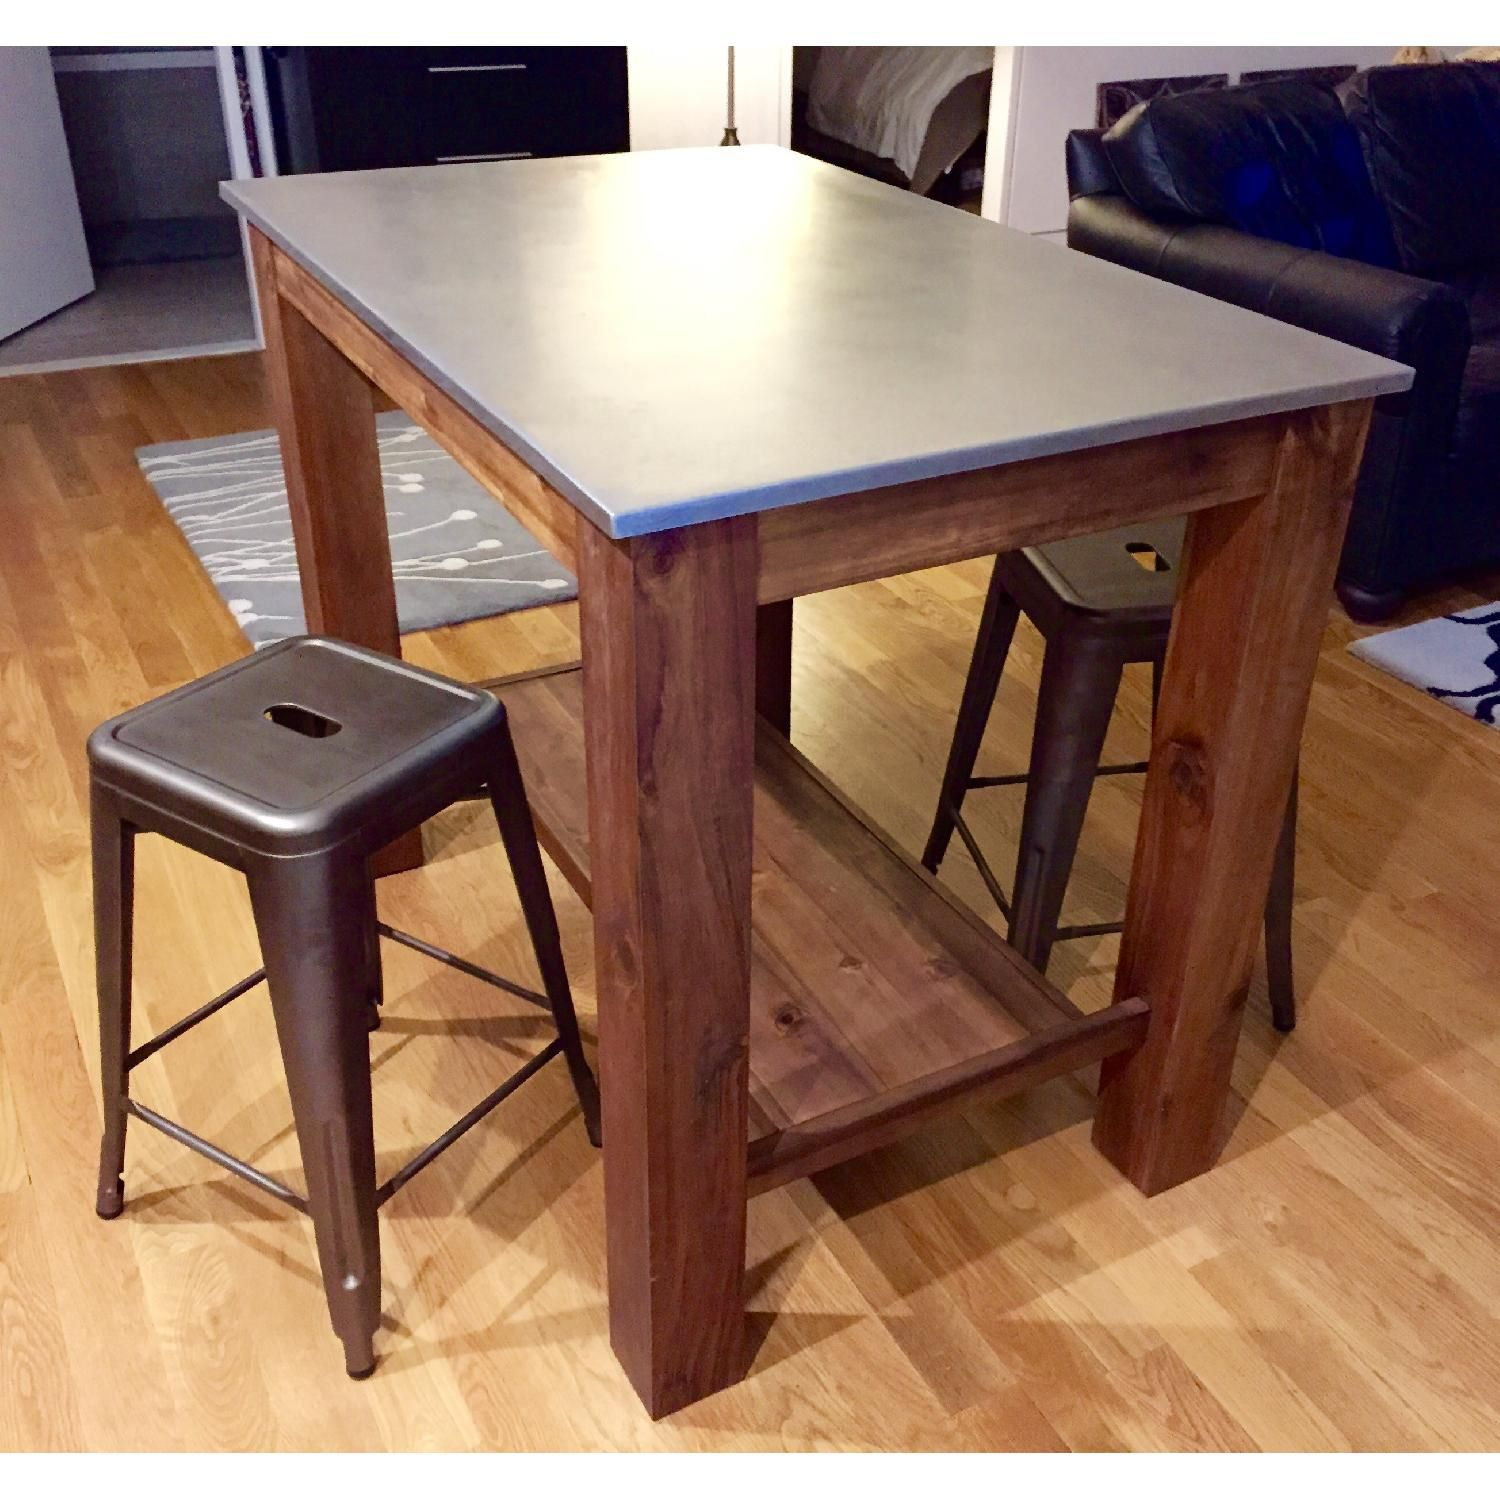 kitchen island bar stools wallpaper for kitchens west elm rustic table w 2 crate